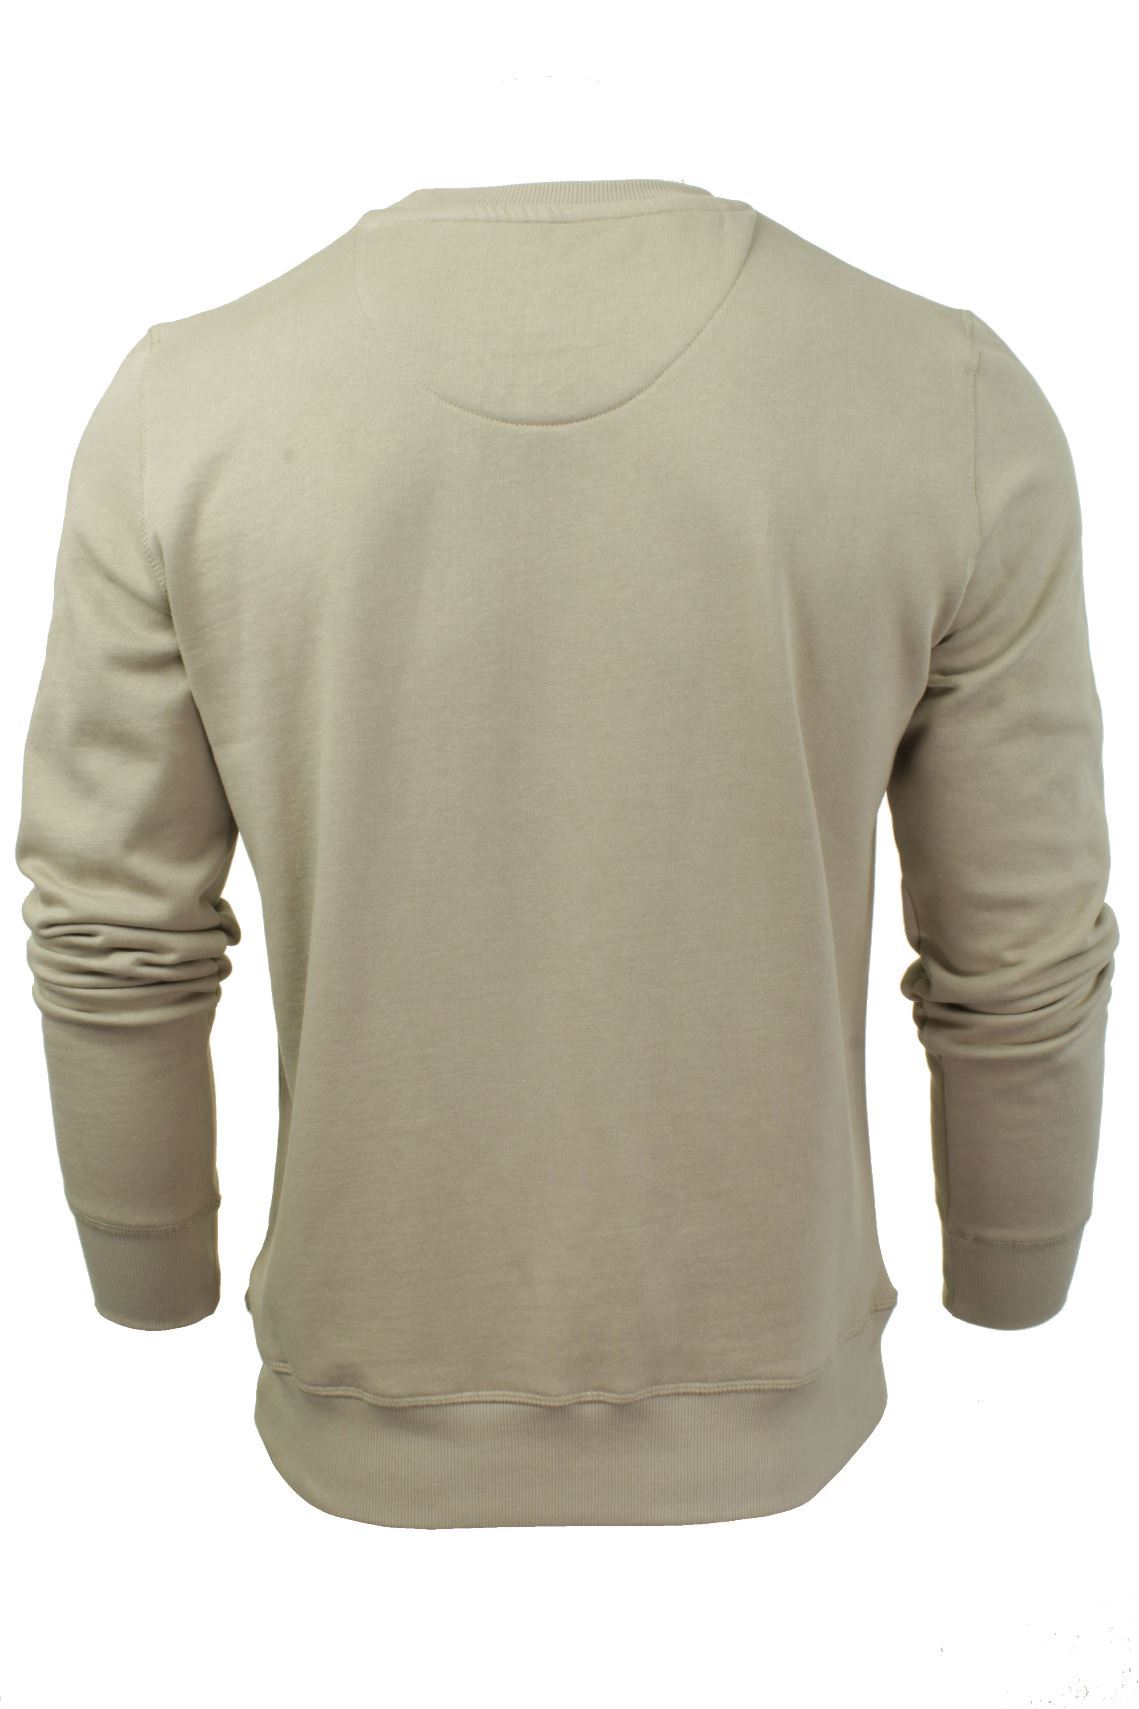 Mens-Sweater-Jumper-Brave-Soul-Jones-Crew-Neck-Sweatshirt thumbnail 11